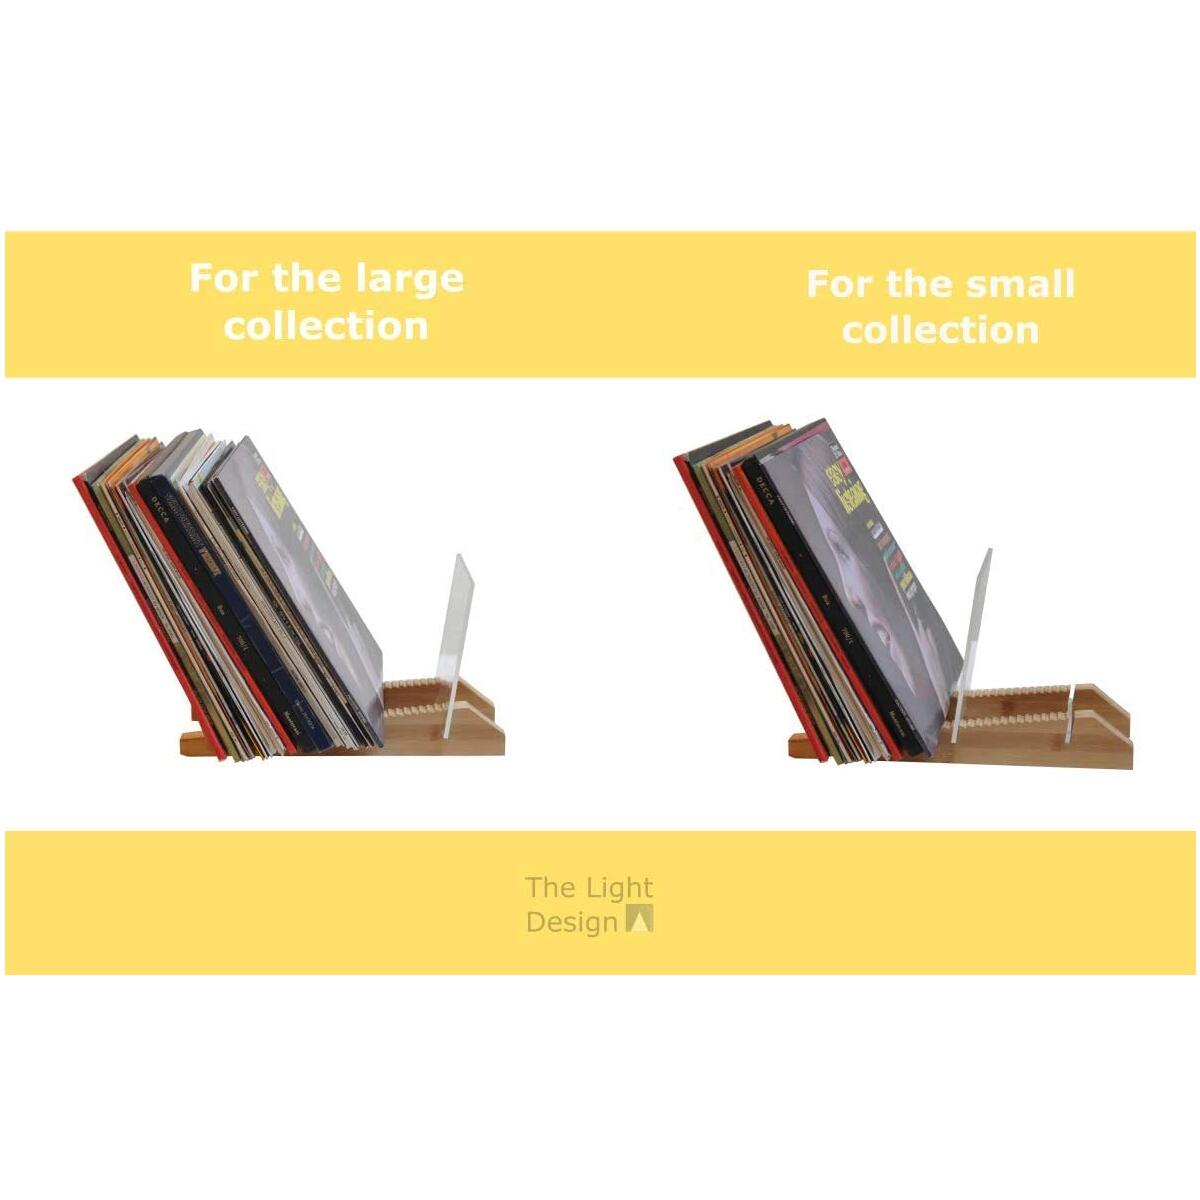 The Light Design Vinyl Records Storage, Adaptable Record Rack for small and large collections, it is perfect as a Record Organizer and Lp Storage for up to 50 albums